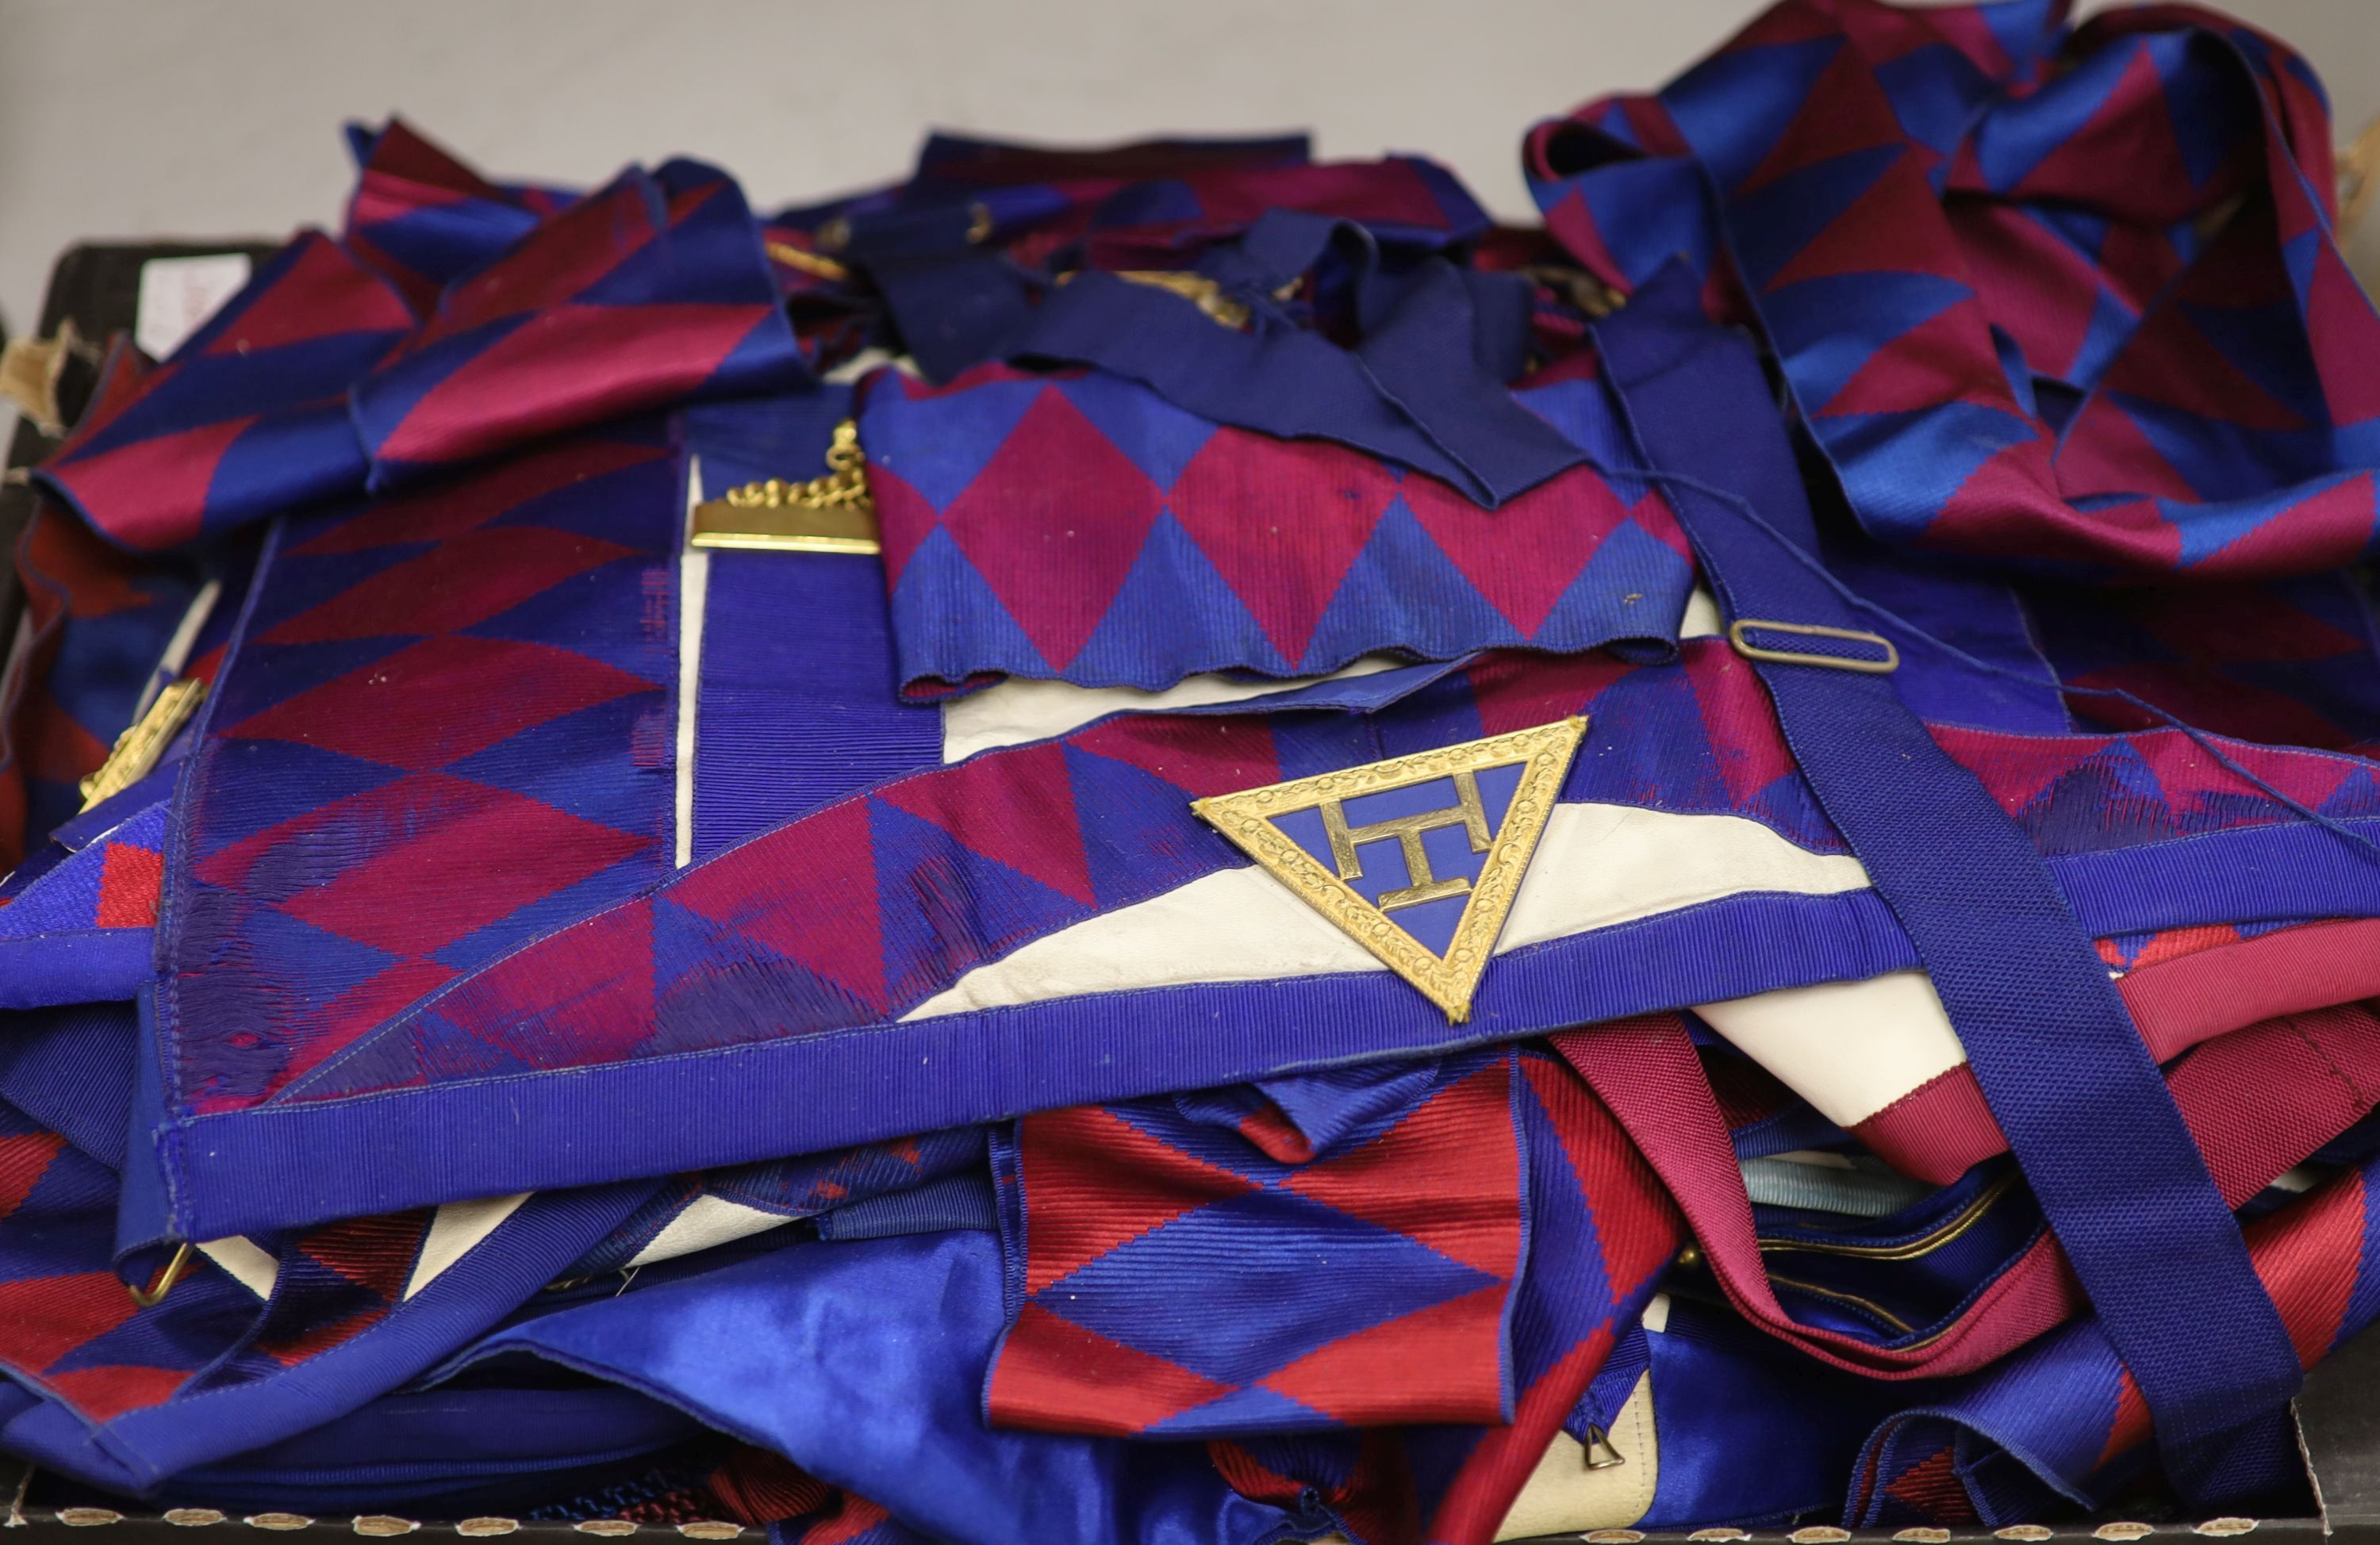 A large collection of Masonic aprons and sashes for London, etc.